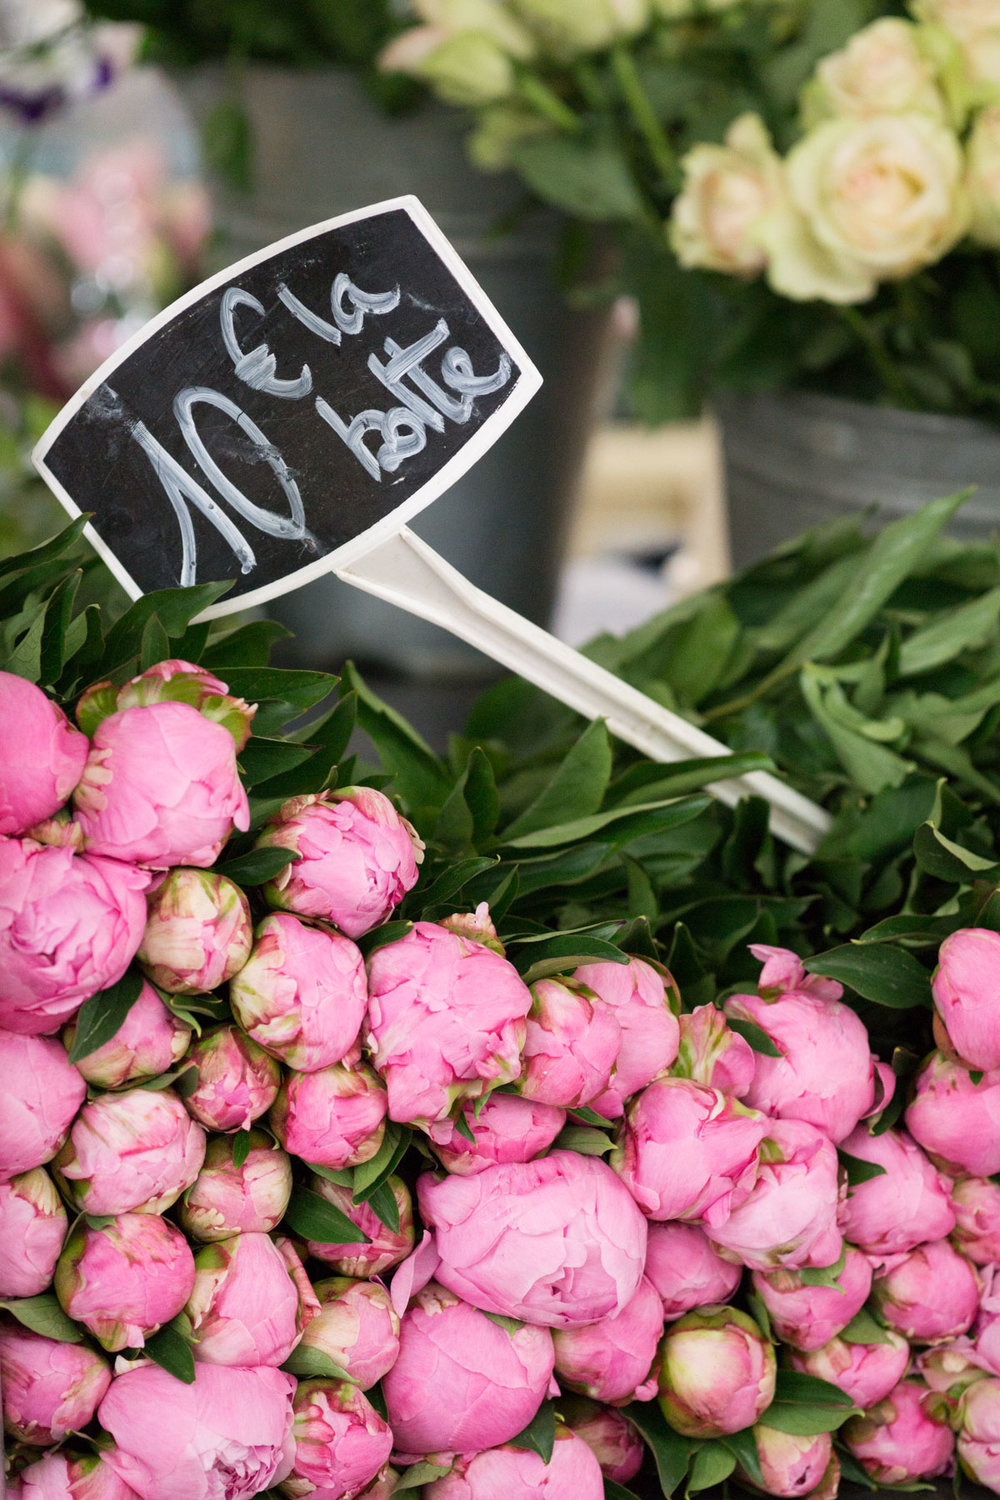 Love peony season?! Discover the best markets in Paris for beautiful peonies. | Peony season in Paris | Paris Flower Markets